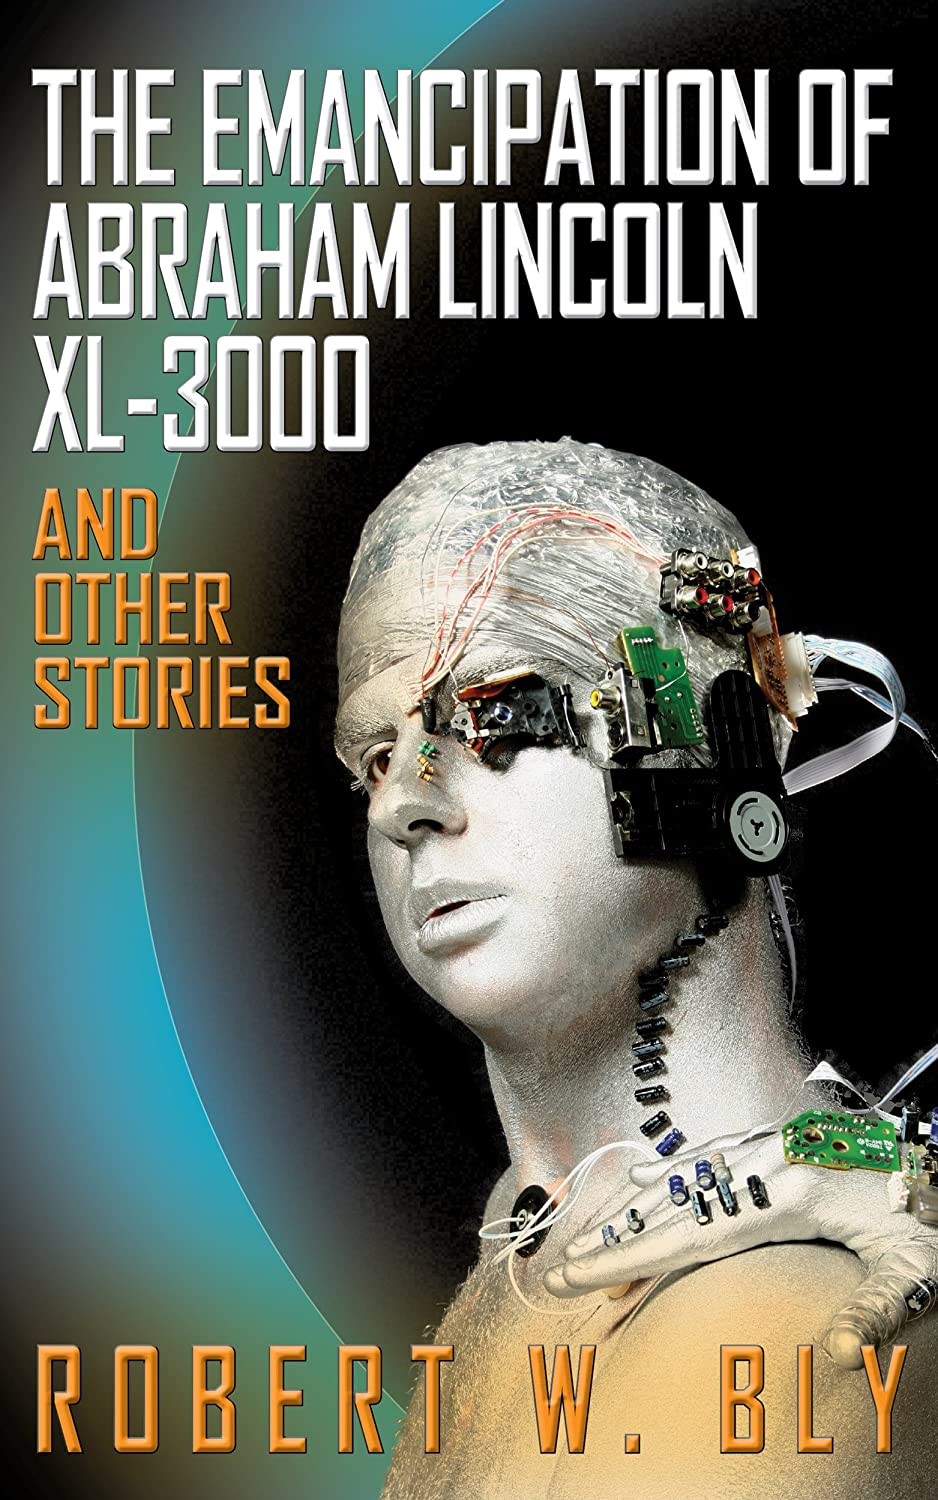 The Emancipation of Abraham Lincoln XL-3000 and other Stories book cover